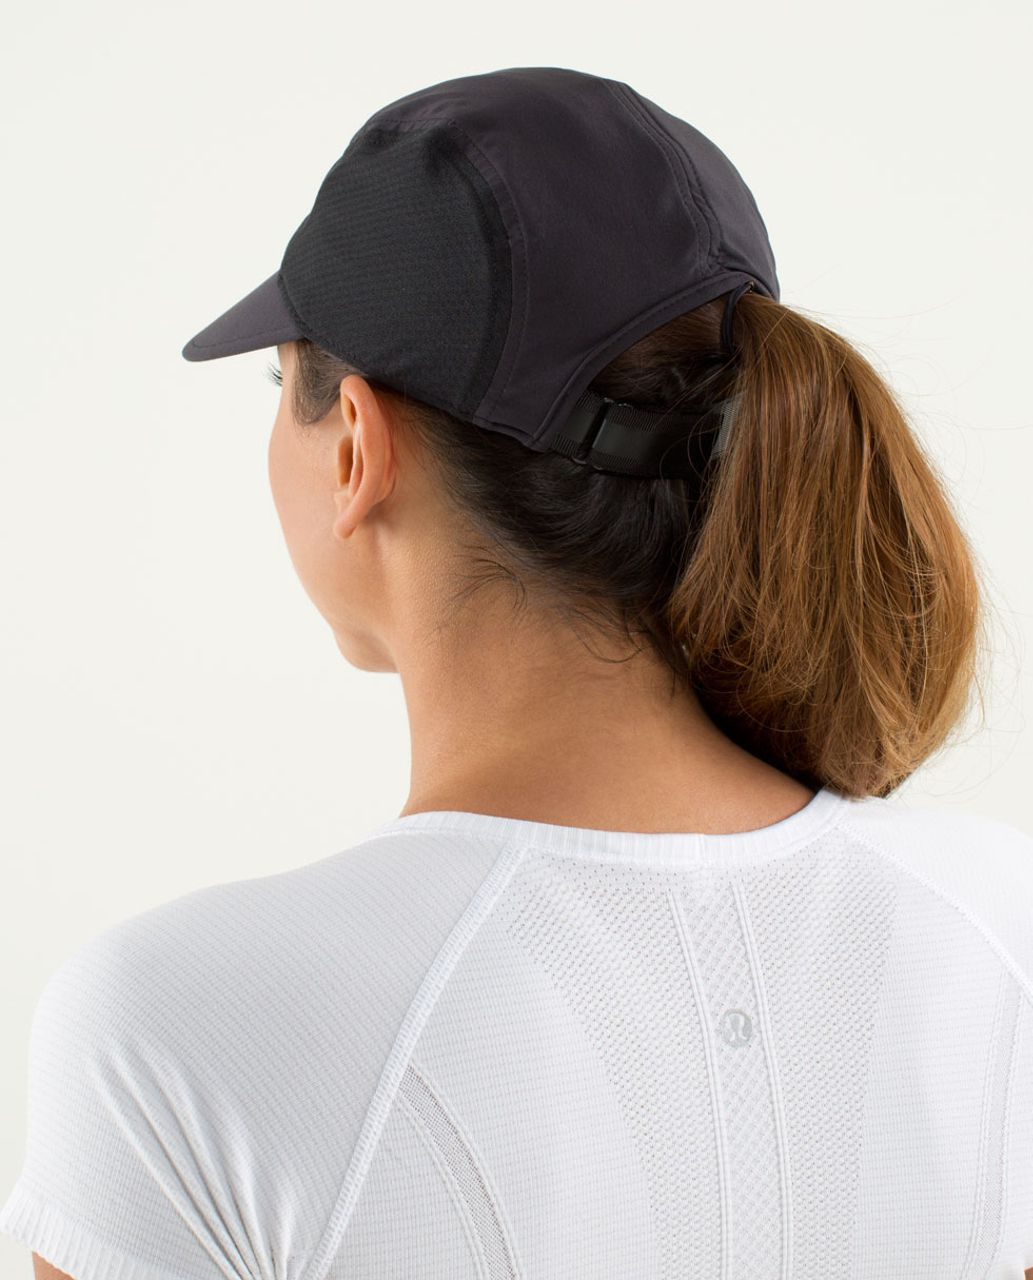 Lululemon Sun Chaser Run Hat - Black (First Release)